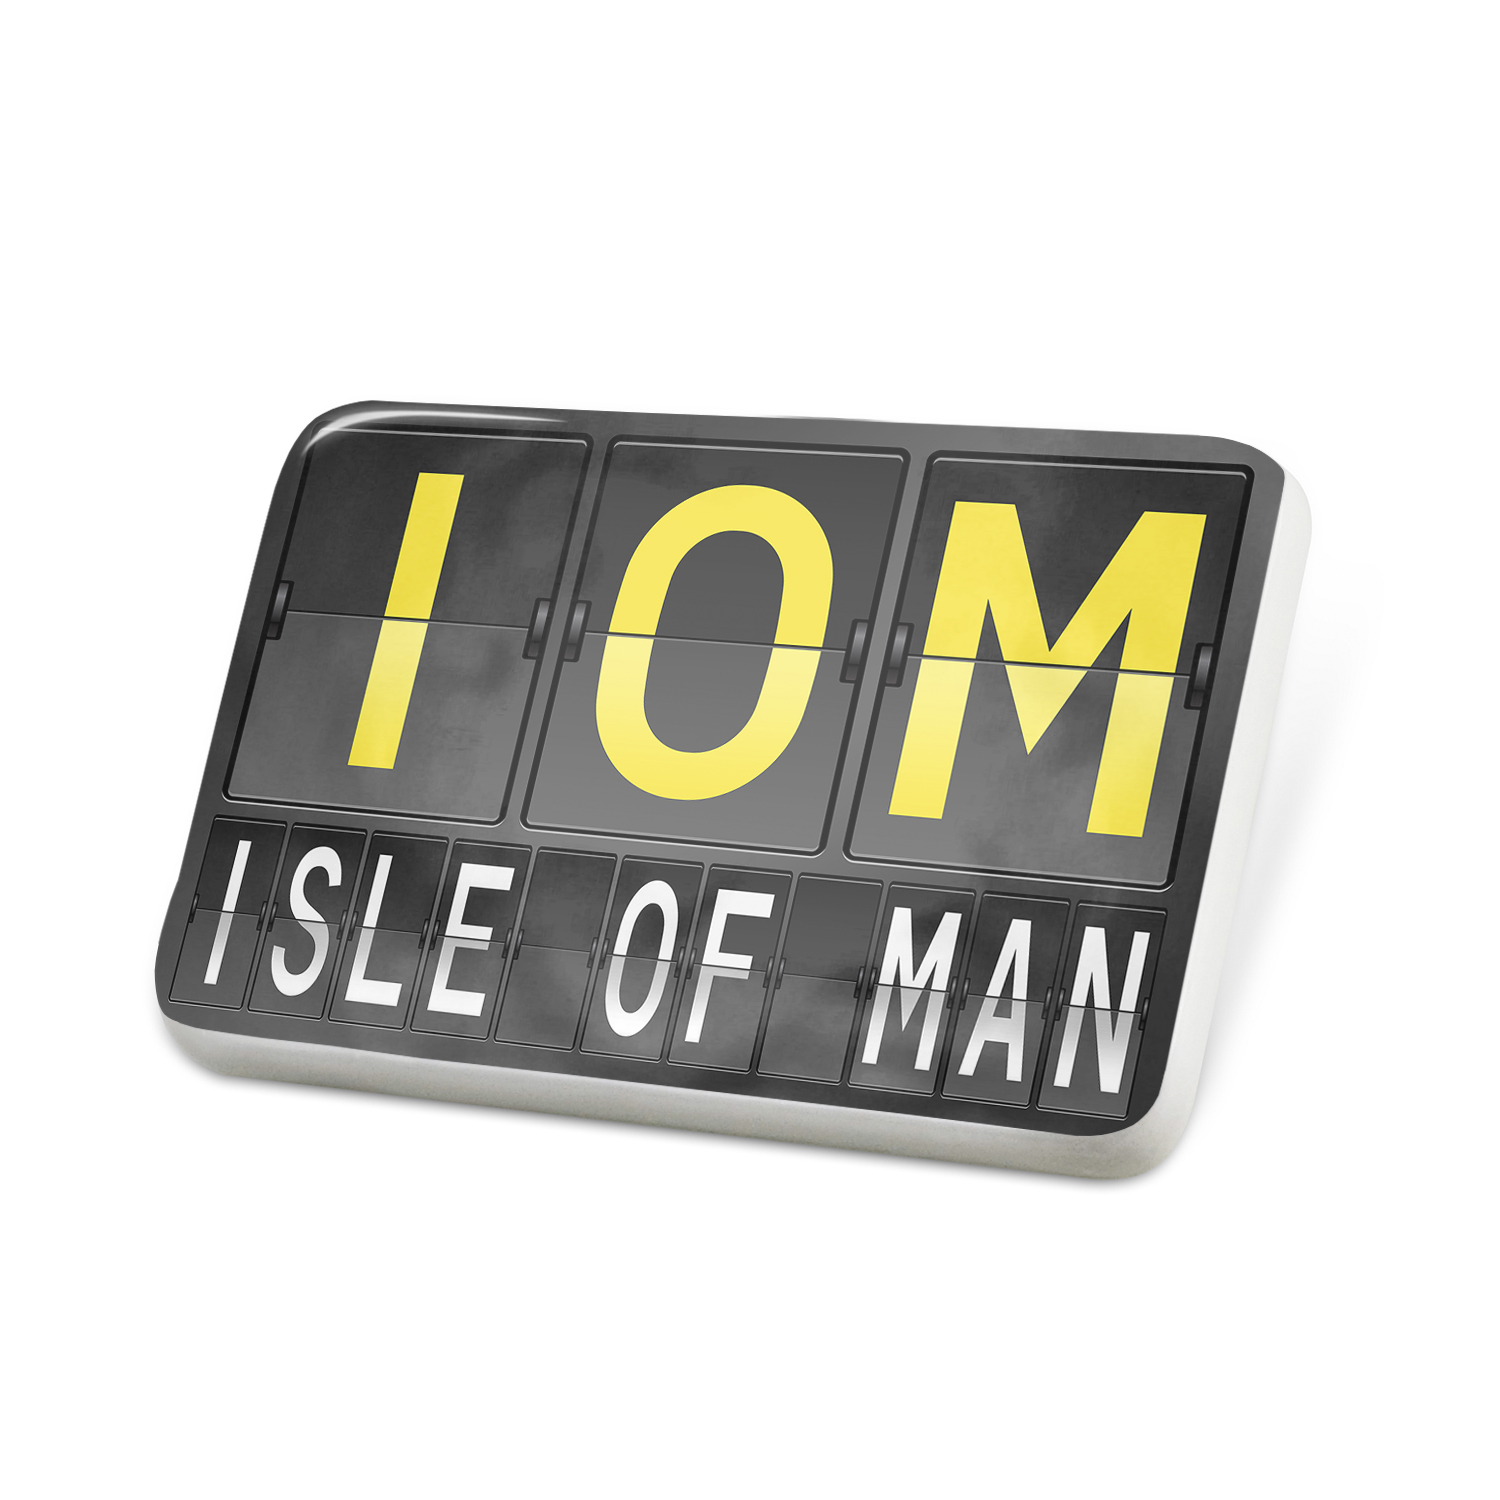 Porcelein Pin IOM Airport Code for Isle of Man Lapel Badge – NEONBLOND